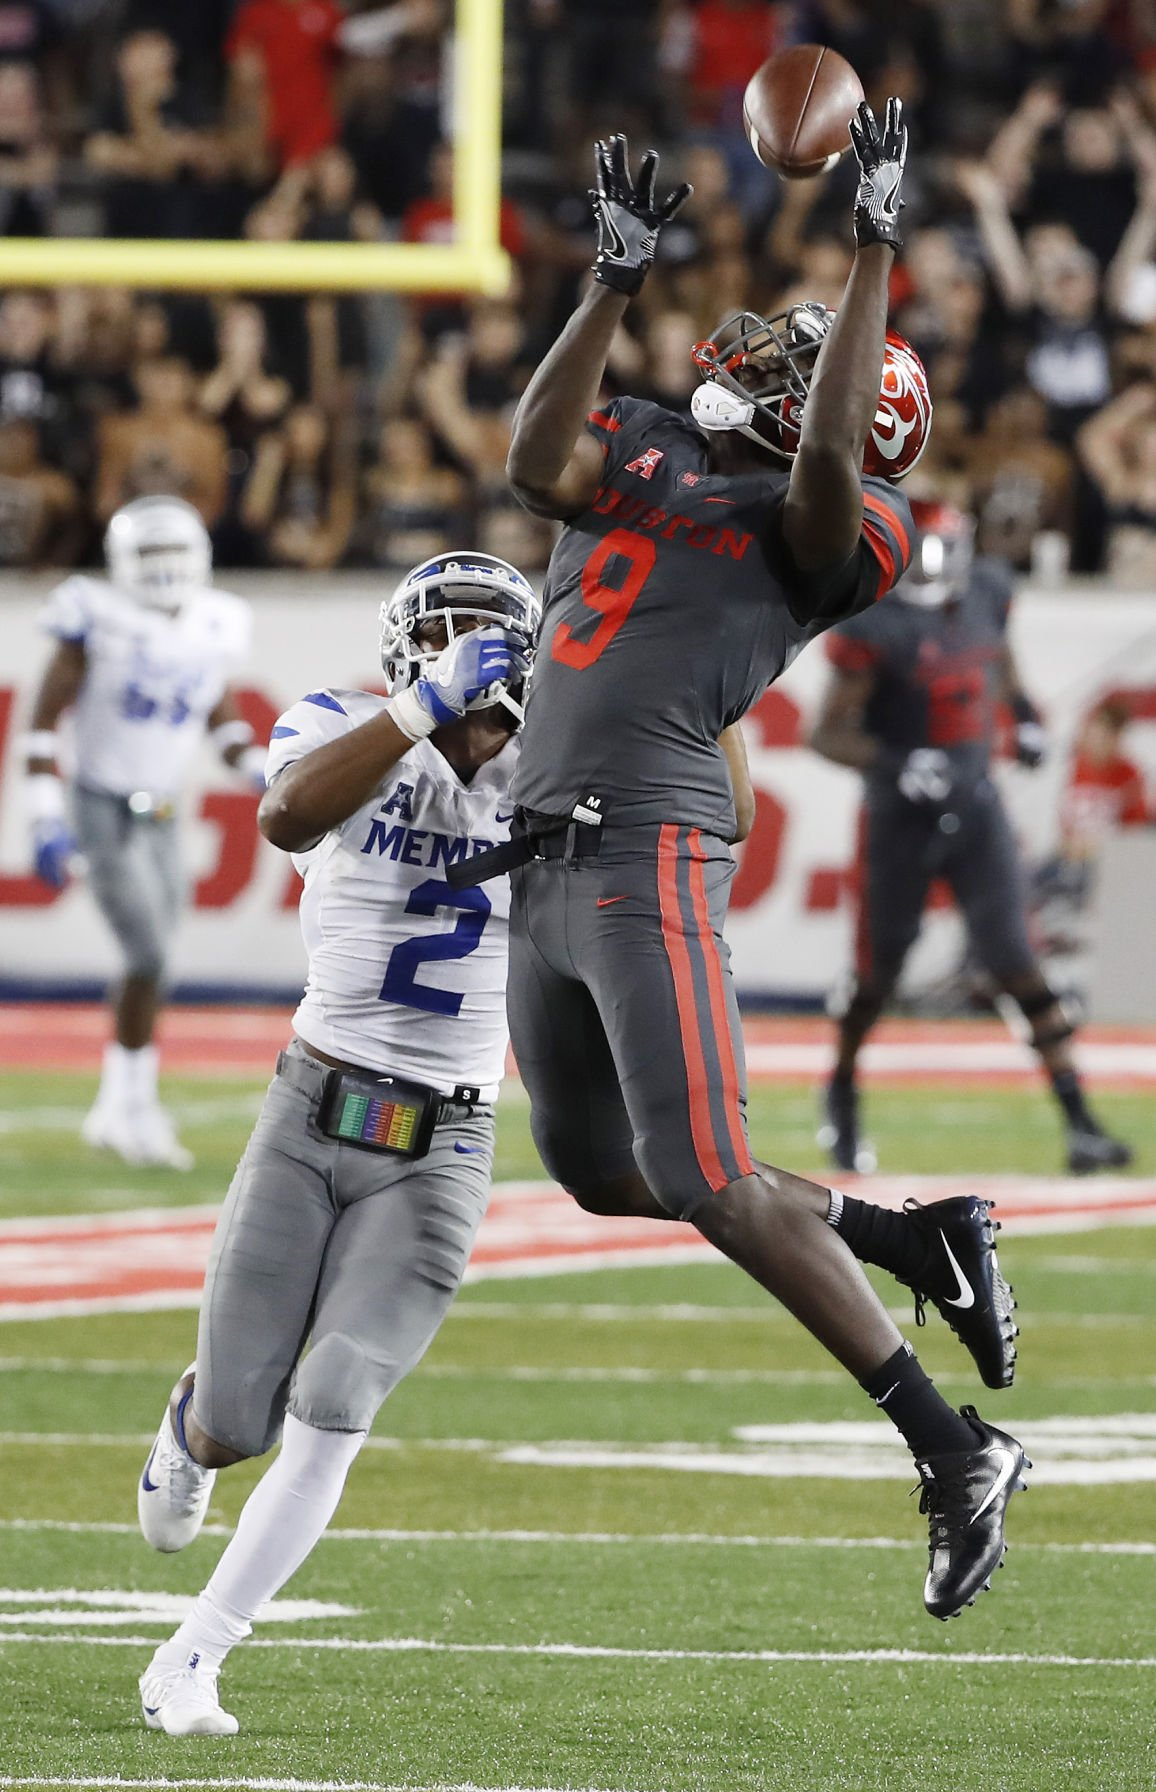 Houston Cougars vs. Memphis Tigers